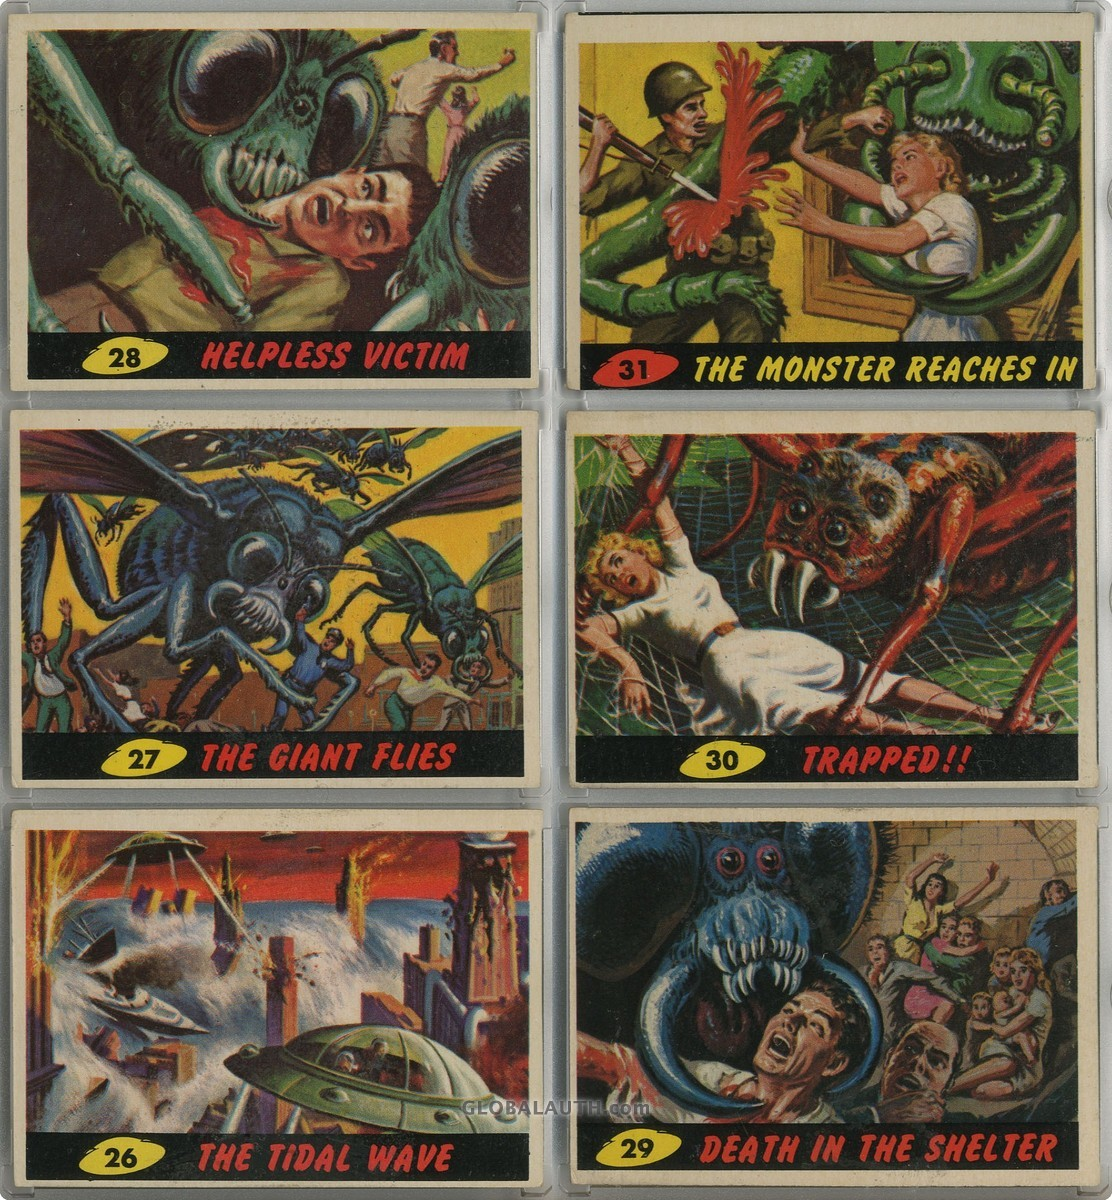 1962-mars-attacks-non-sports-card-set-front-image.jpg, #8